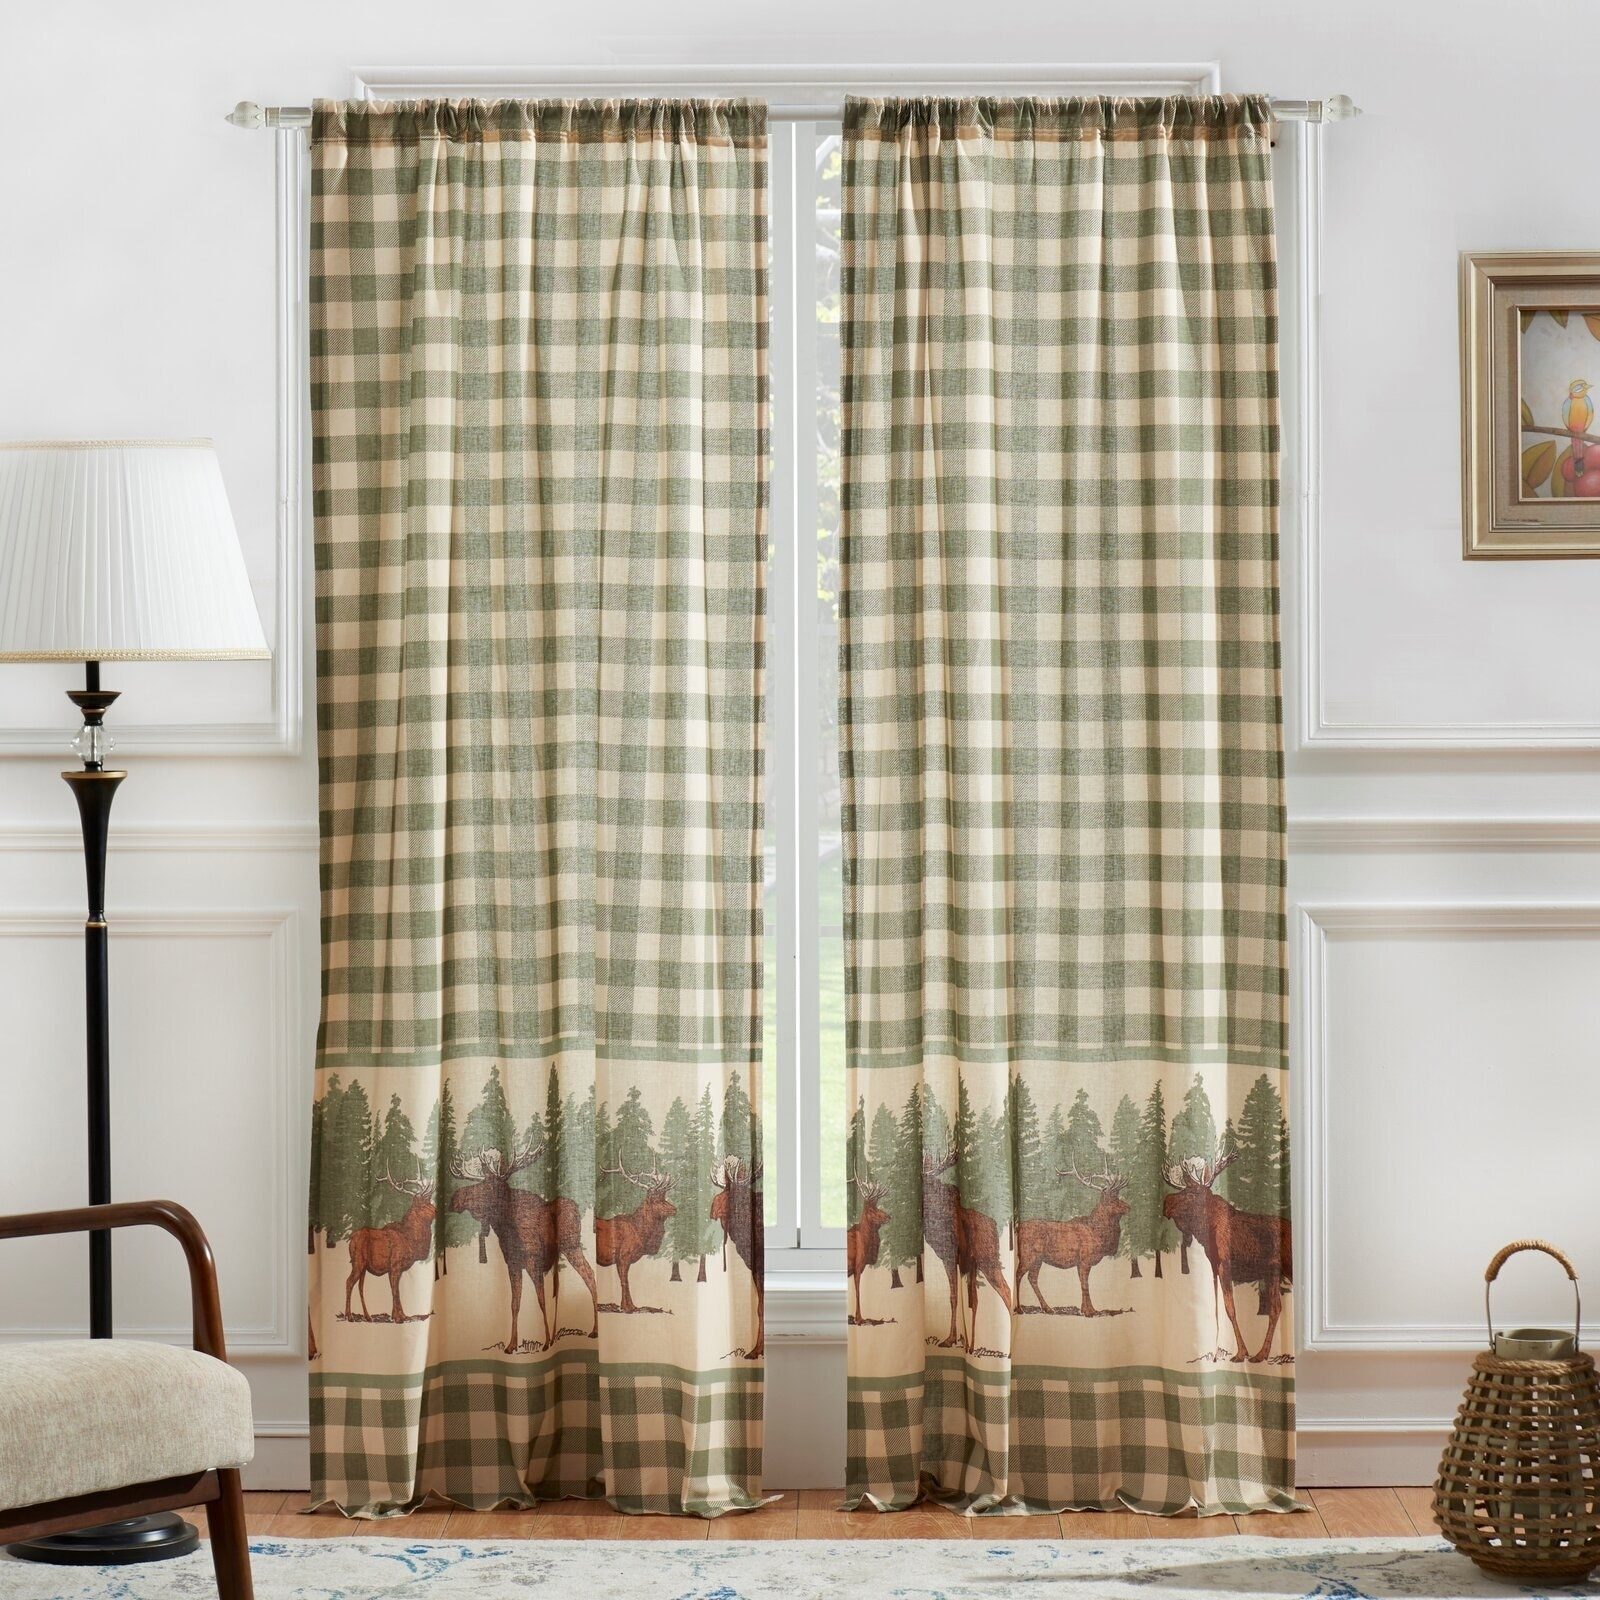 Green checkered floor-length curtains with an image of trees, an elk, and a moose on the bottom